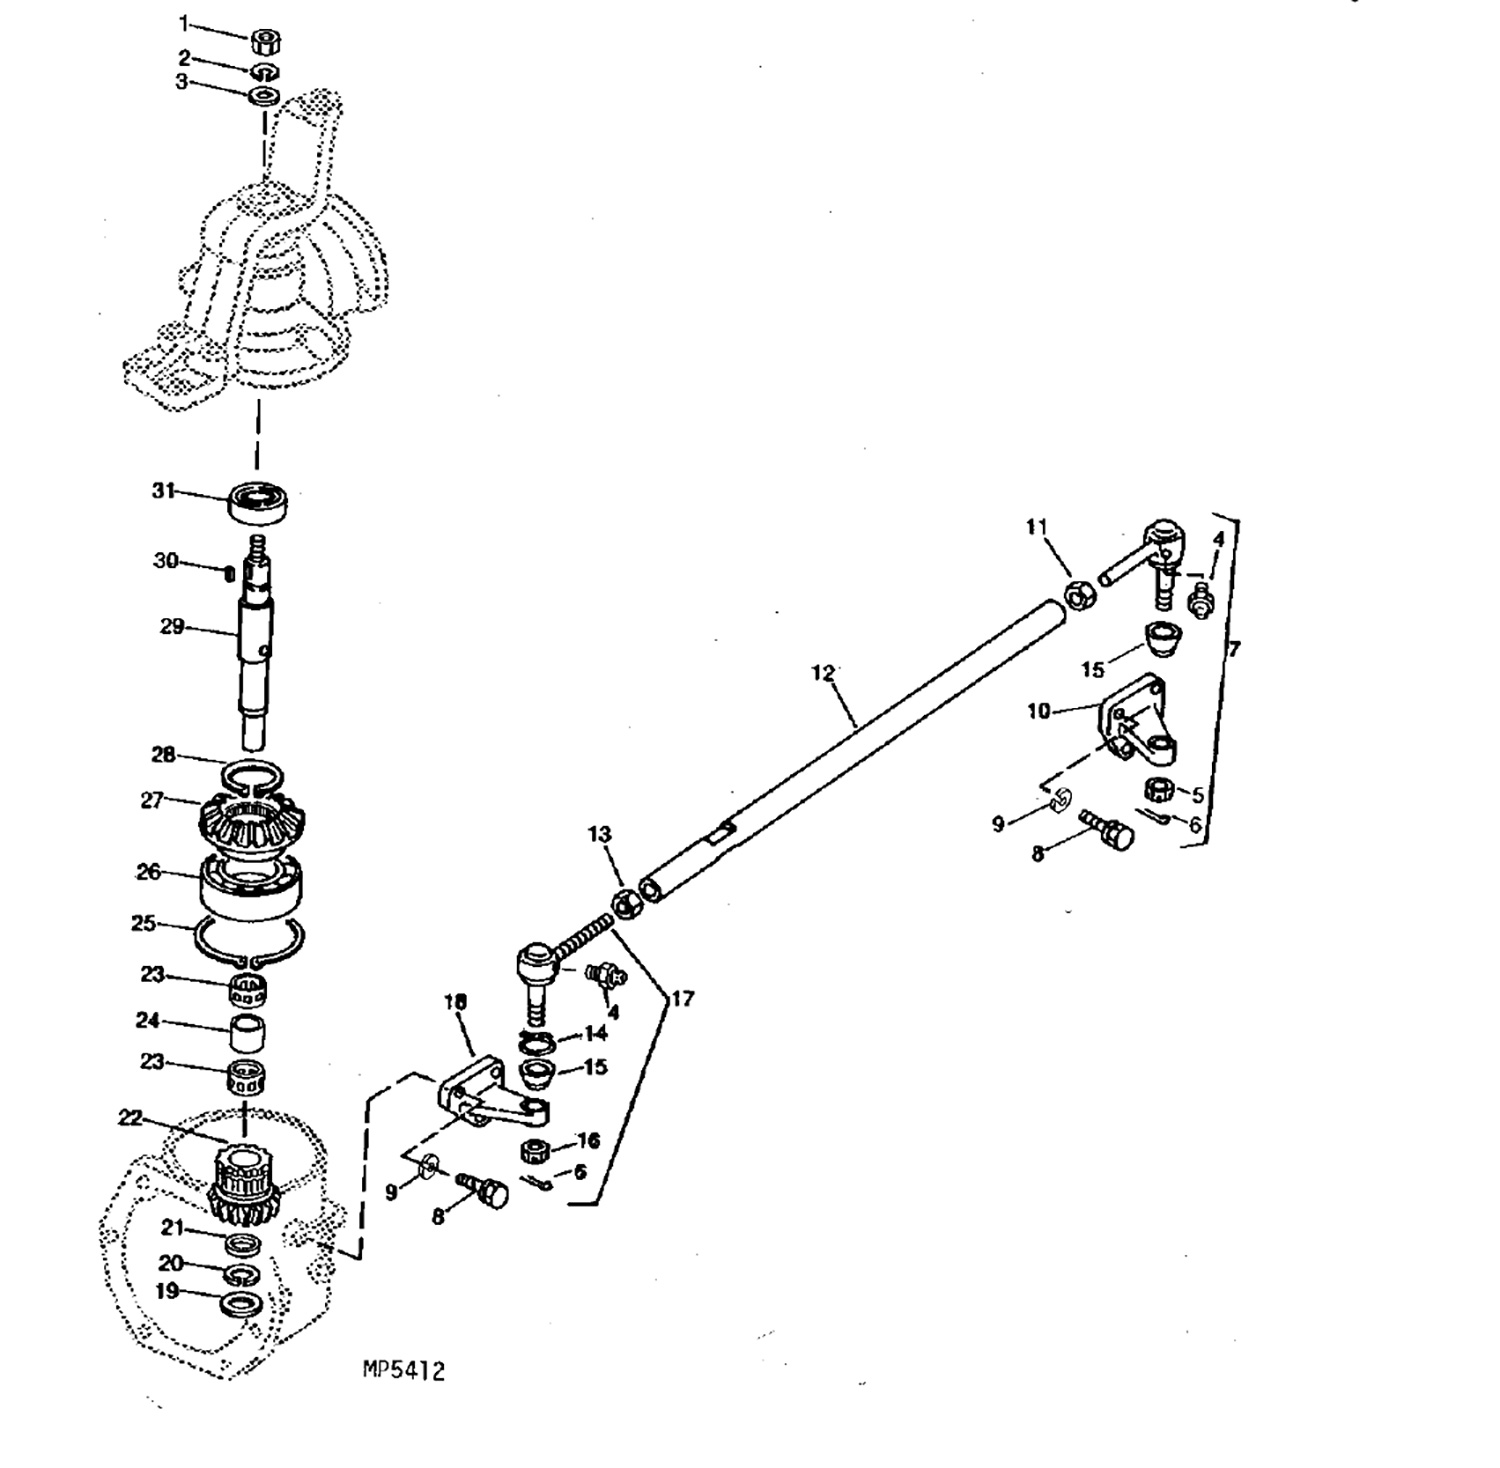 John Deere 790 Tractor Wiring Diagrams Library. John Deere 790 Tractor Parts Diagram Trusted Wiring \u2022 Audi Transmission. John Deere. John Deere 4230 Parts Diagram Air Cleaner At Scoala.co